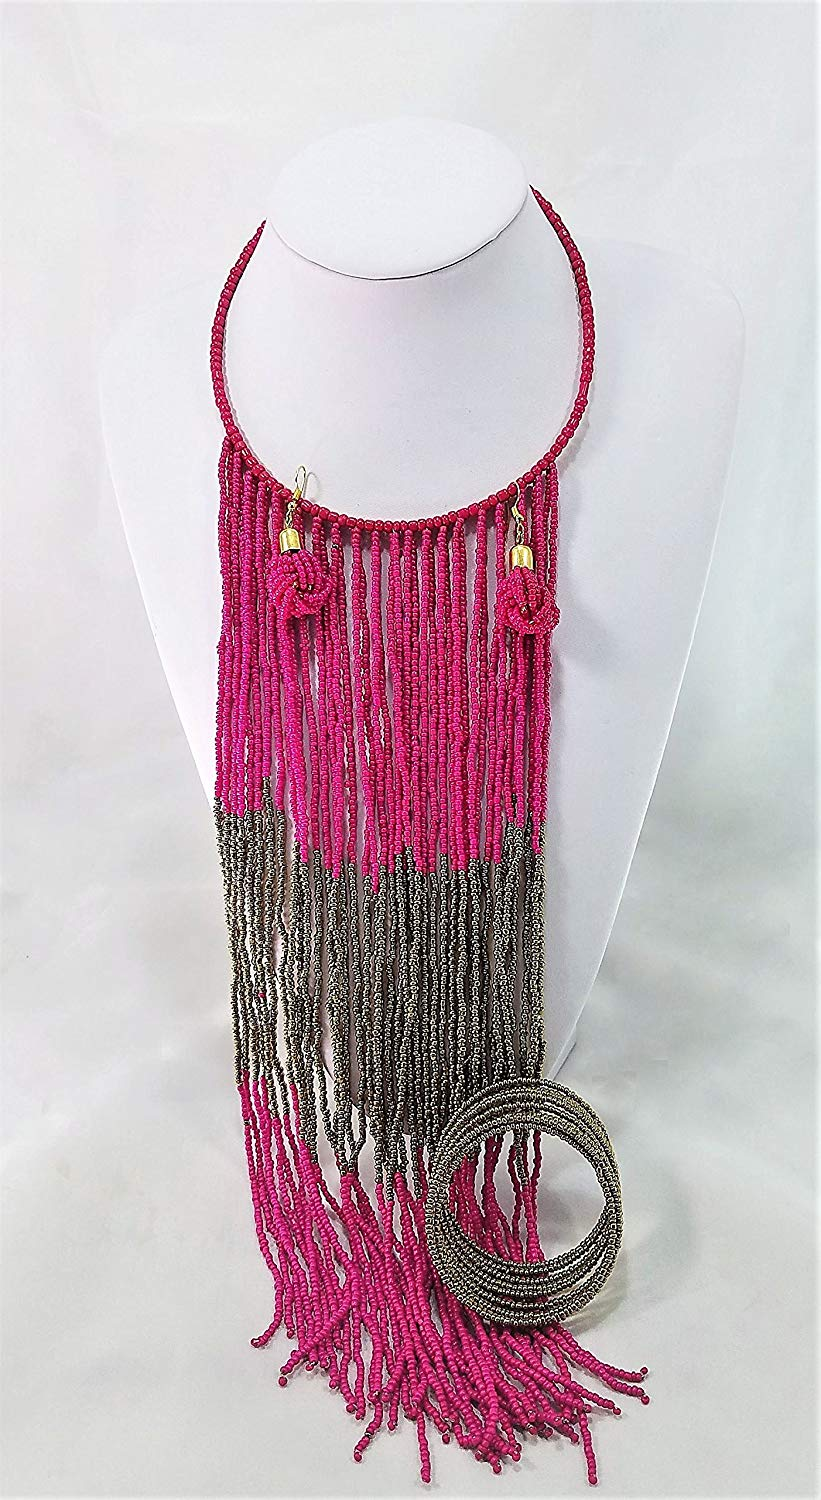 Handmade Fuchsia and Gold Bracelet, Earrings, and Necklace Maasai Masai Jewelry Set